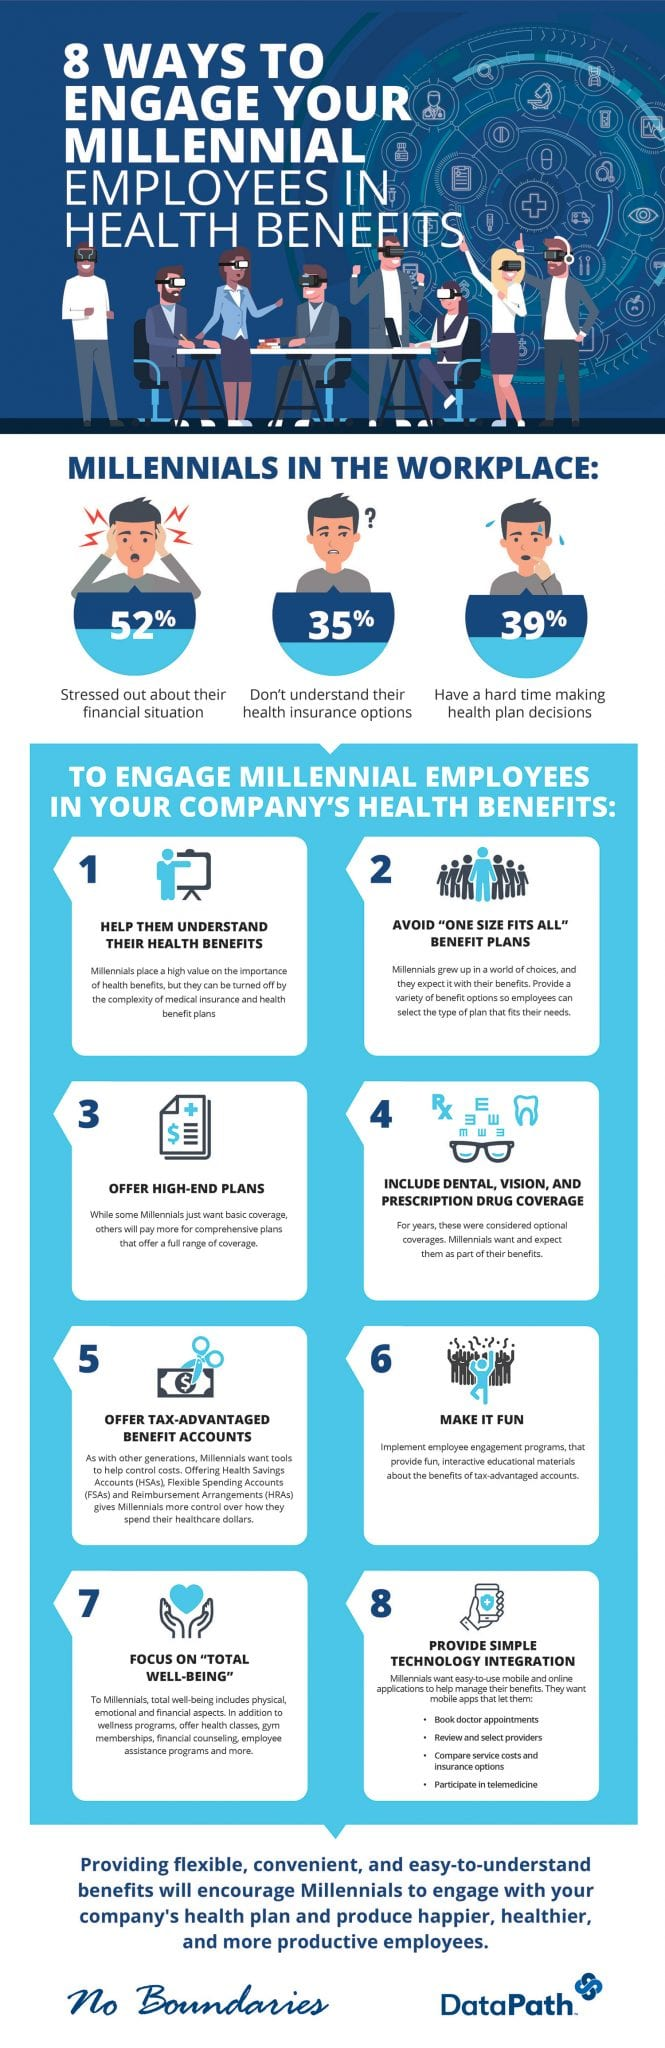 8 Ways to Engage Your Millennial Employees in Health Benefits